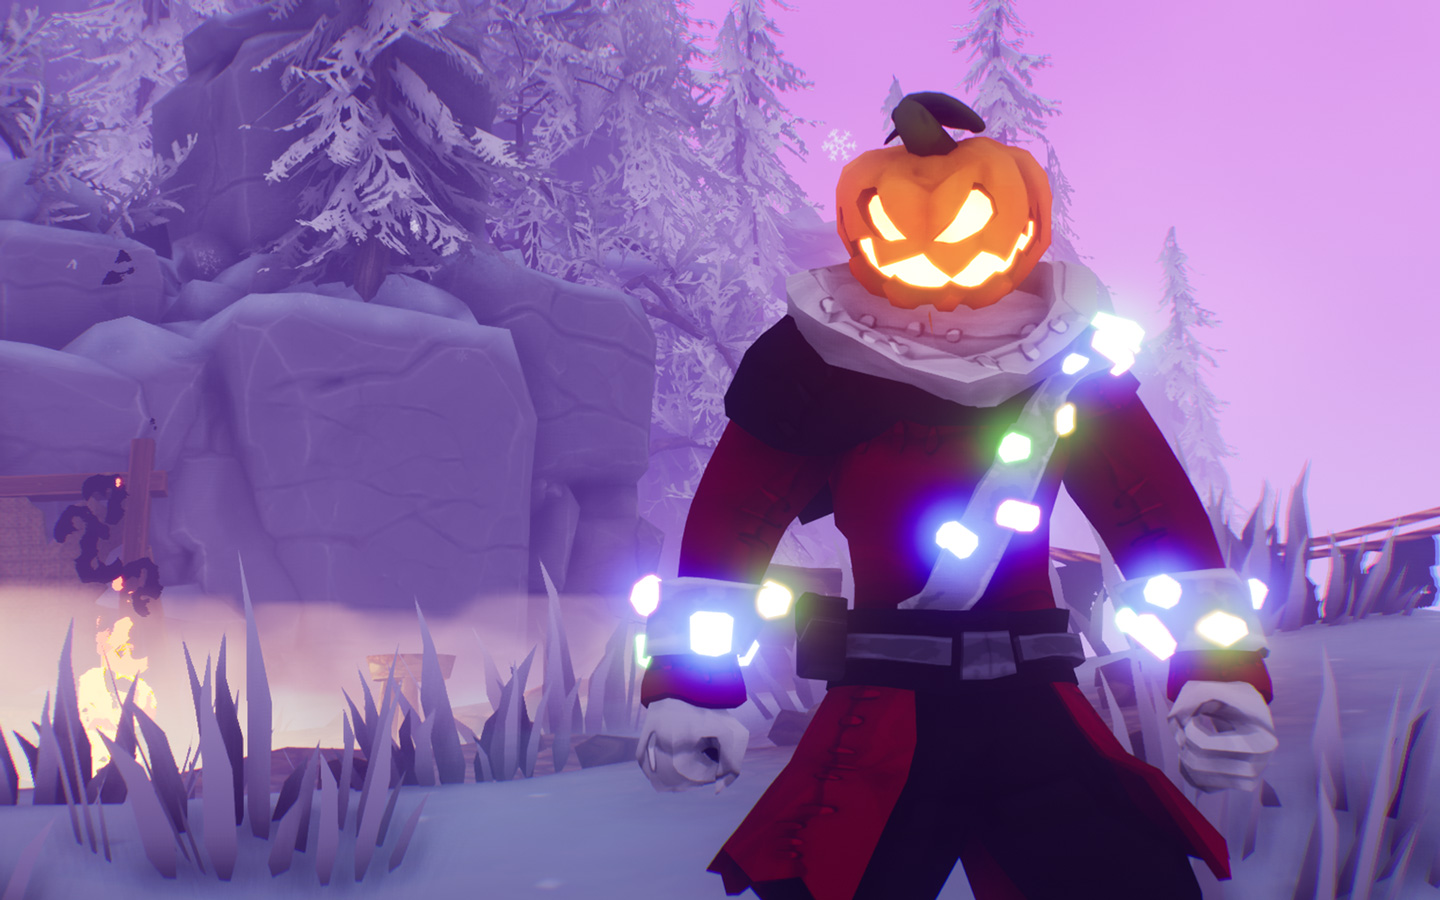 Free Pumpkin Jack Wallpaper in 1440x900